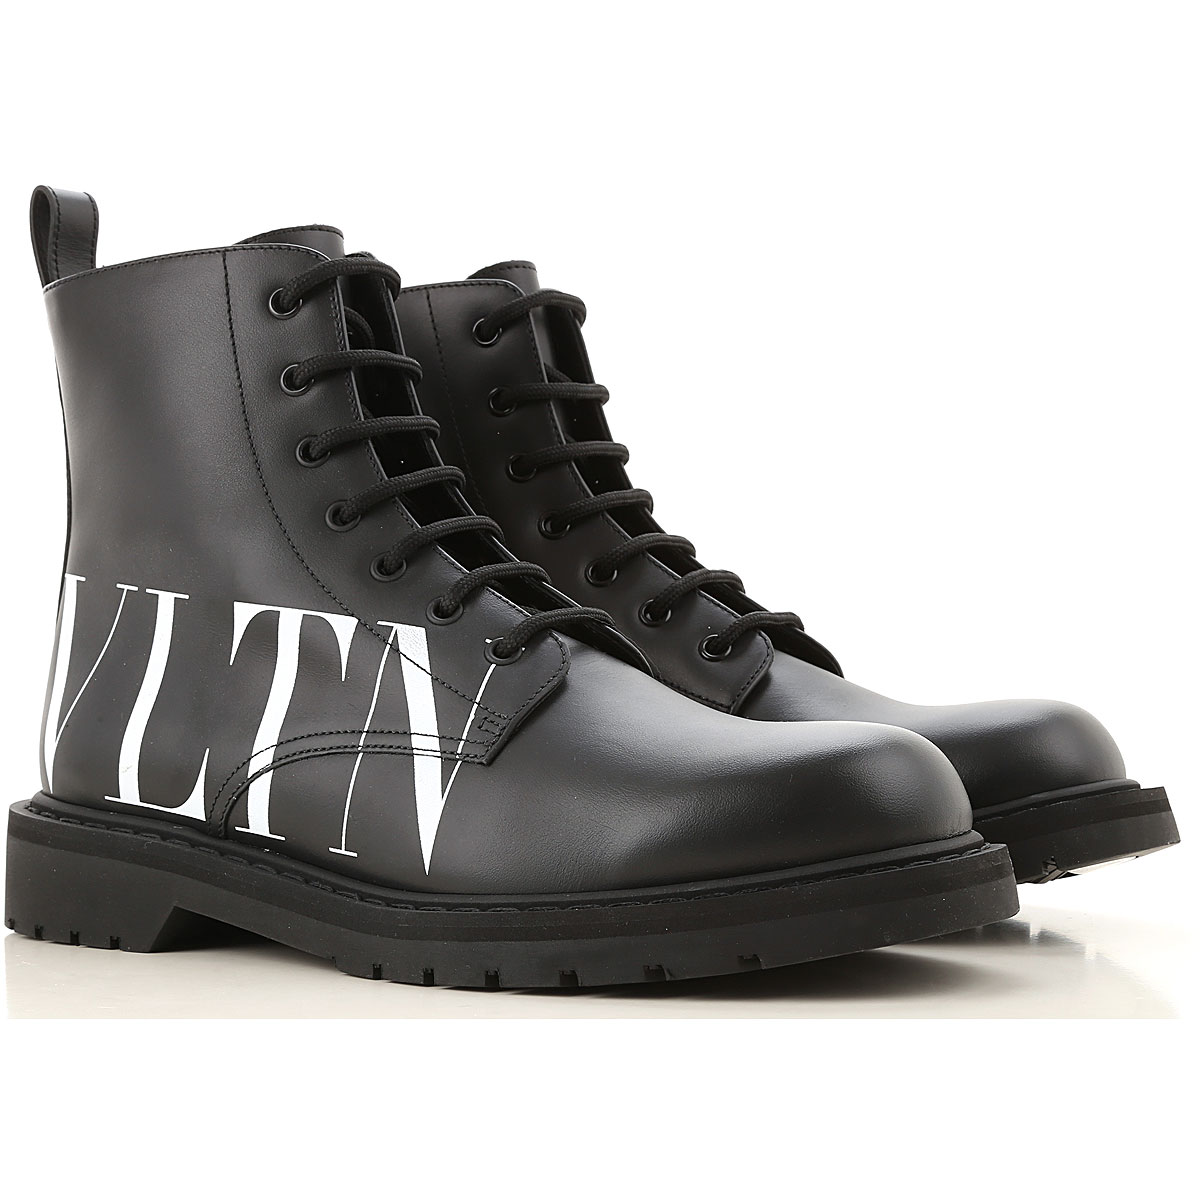 Valentino Garavani Boots for Men, Booties On Sale, Black, Leather, 2019, 10 10.5 11.5 7.5 8 9 9.5